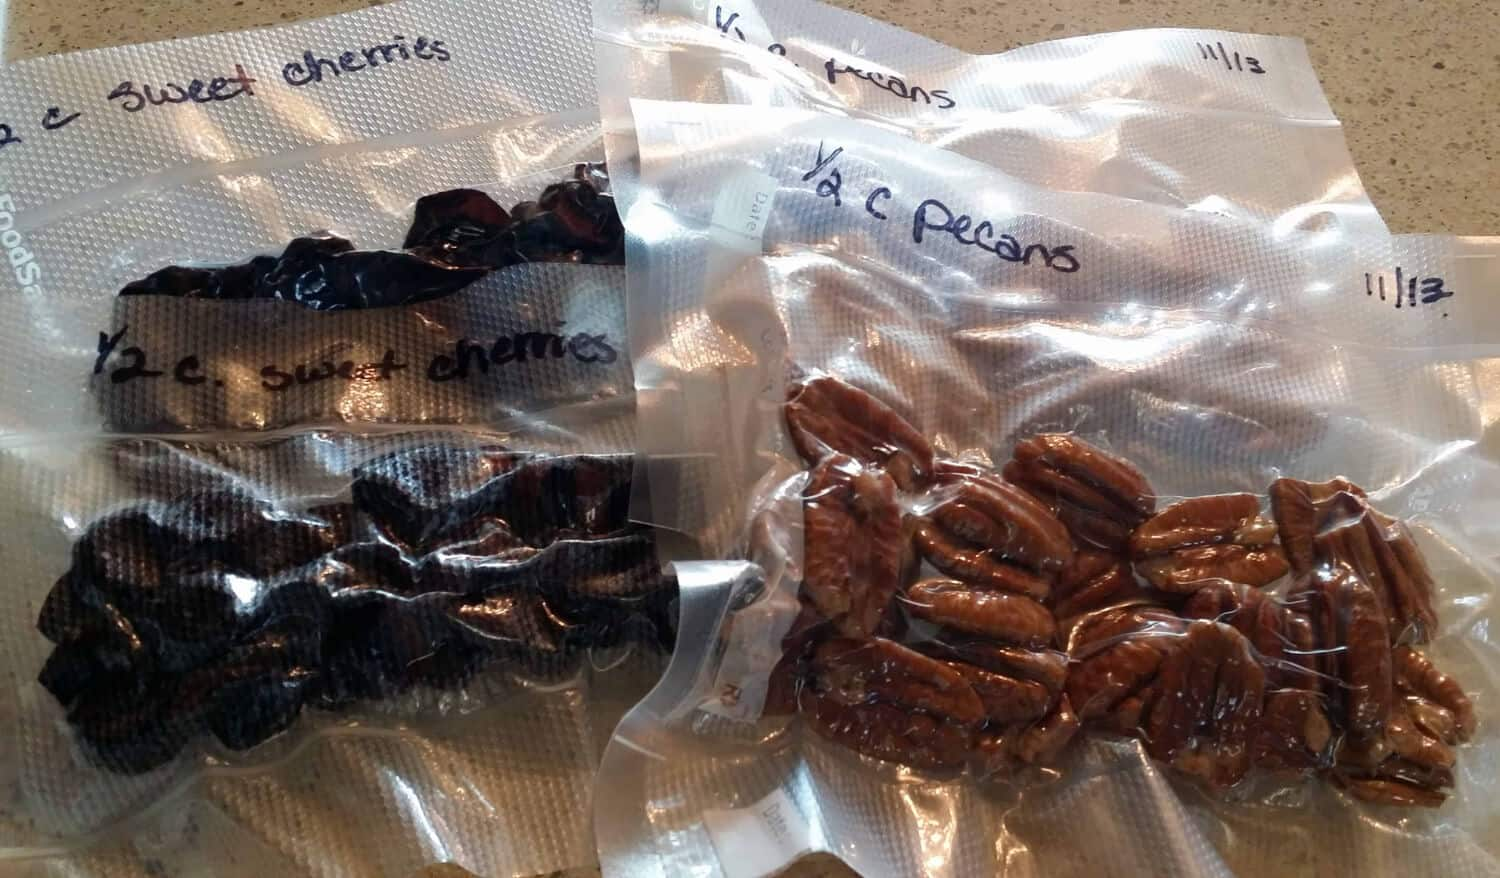 dehydrated cherries and pecans for Bishop's Bread